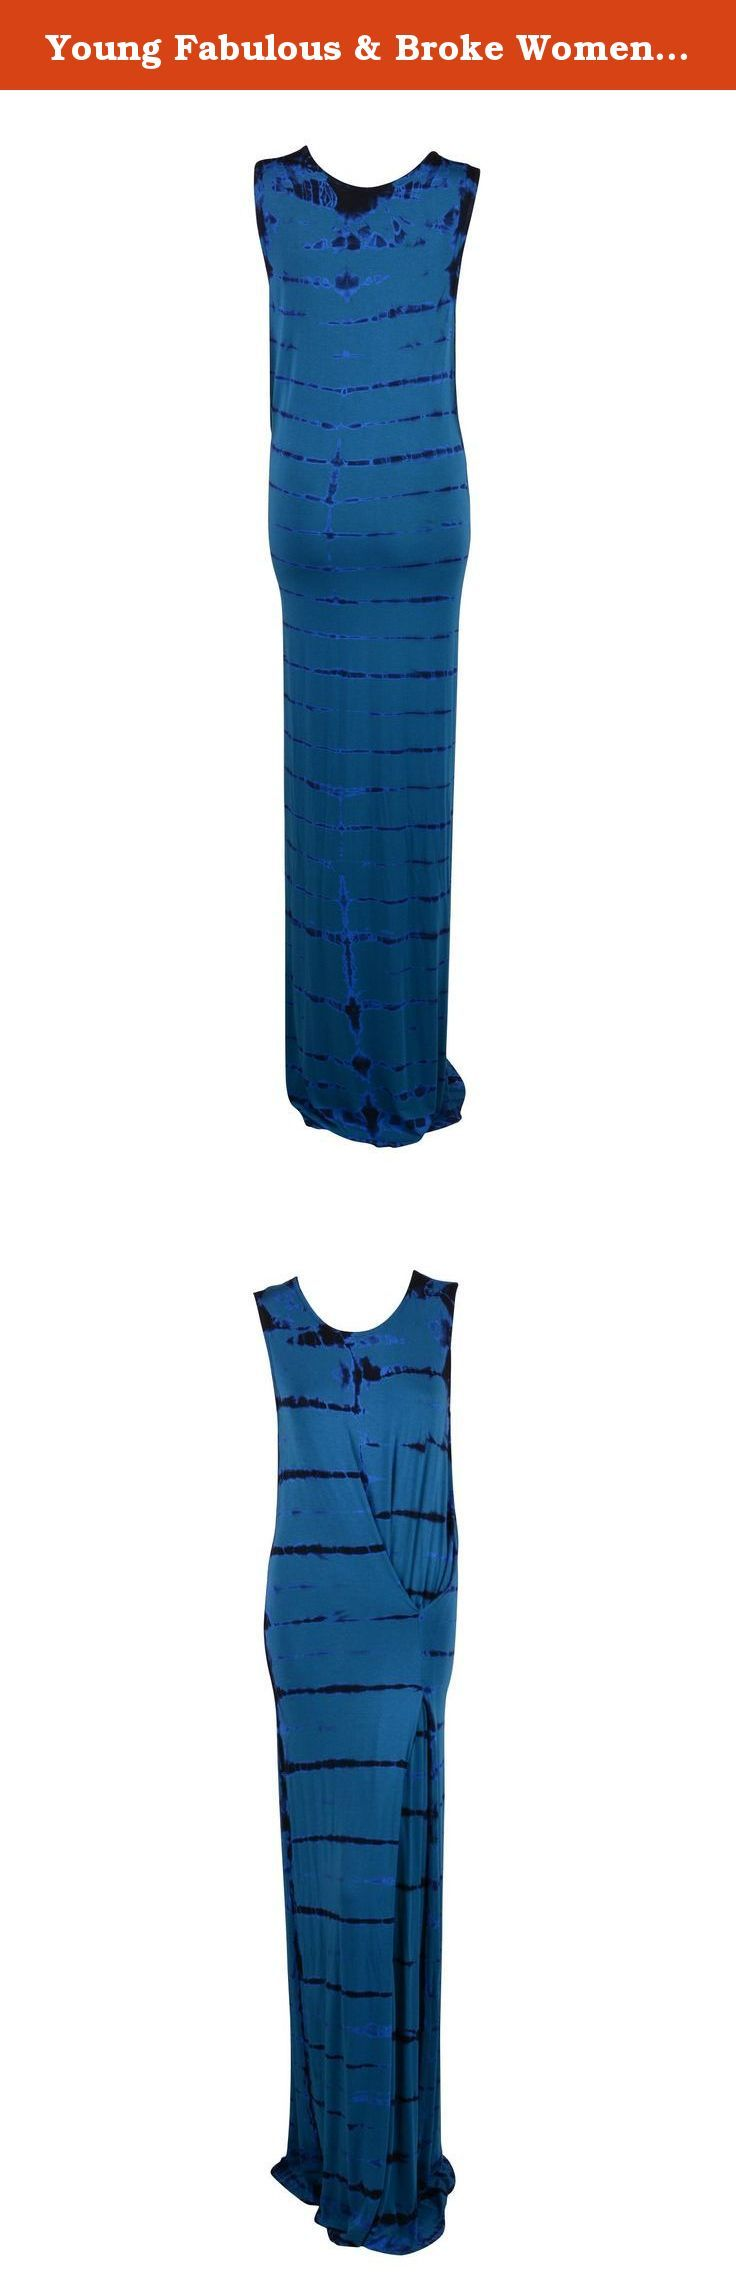 Young Fabulous & Broke Womens Teal Huxley Tie Dye Maxi Dress S. Modest scoop neck Teal/navy blue tie dye Stretch knit fabric Gathered seam at left side Full length Sleeveless.